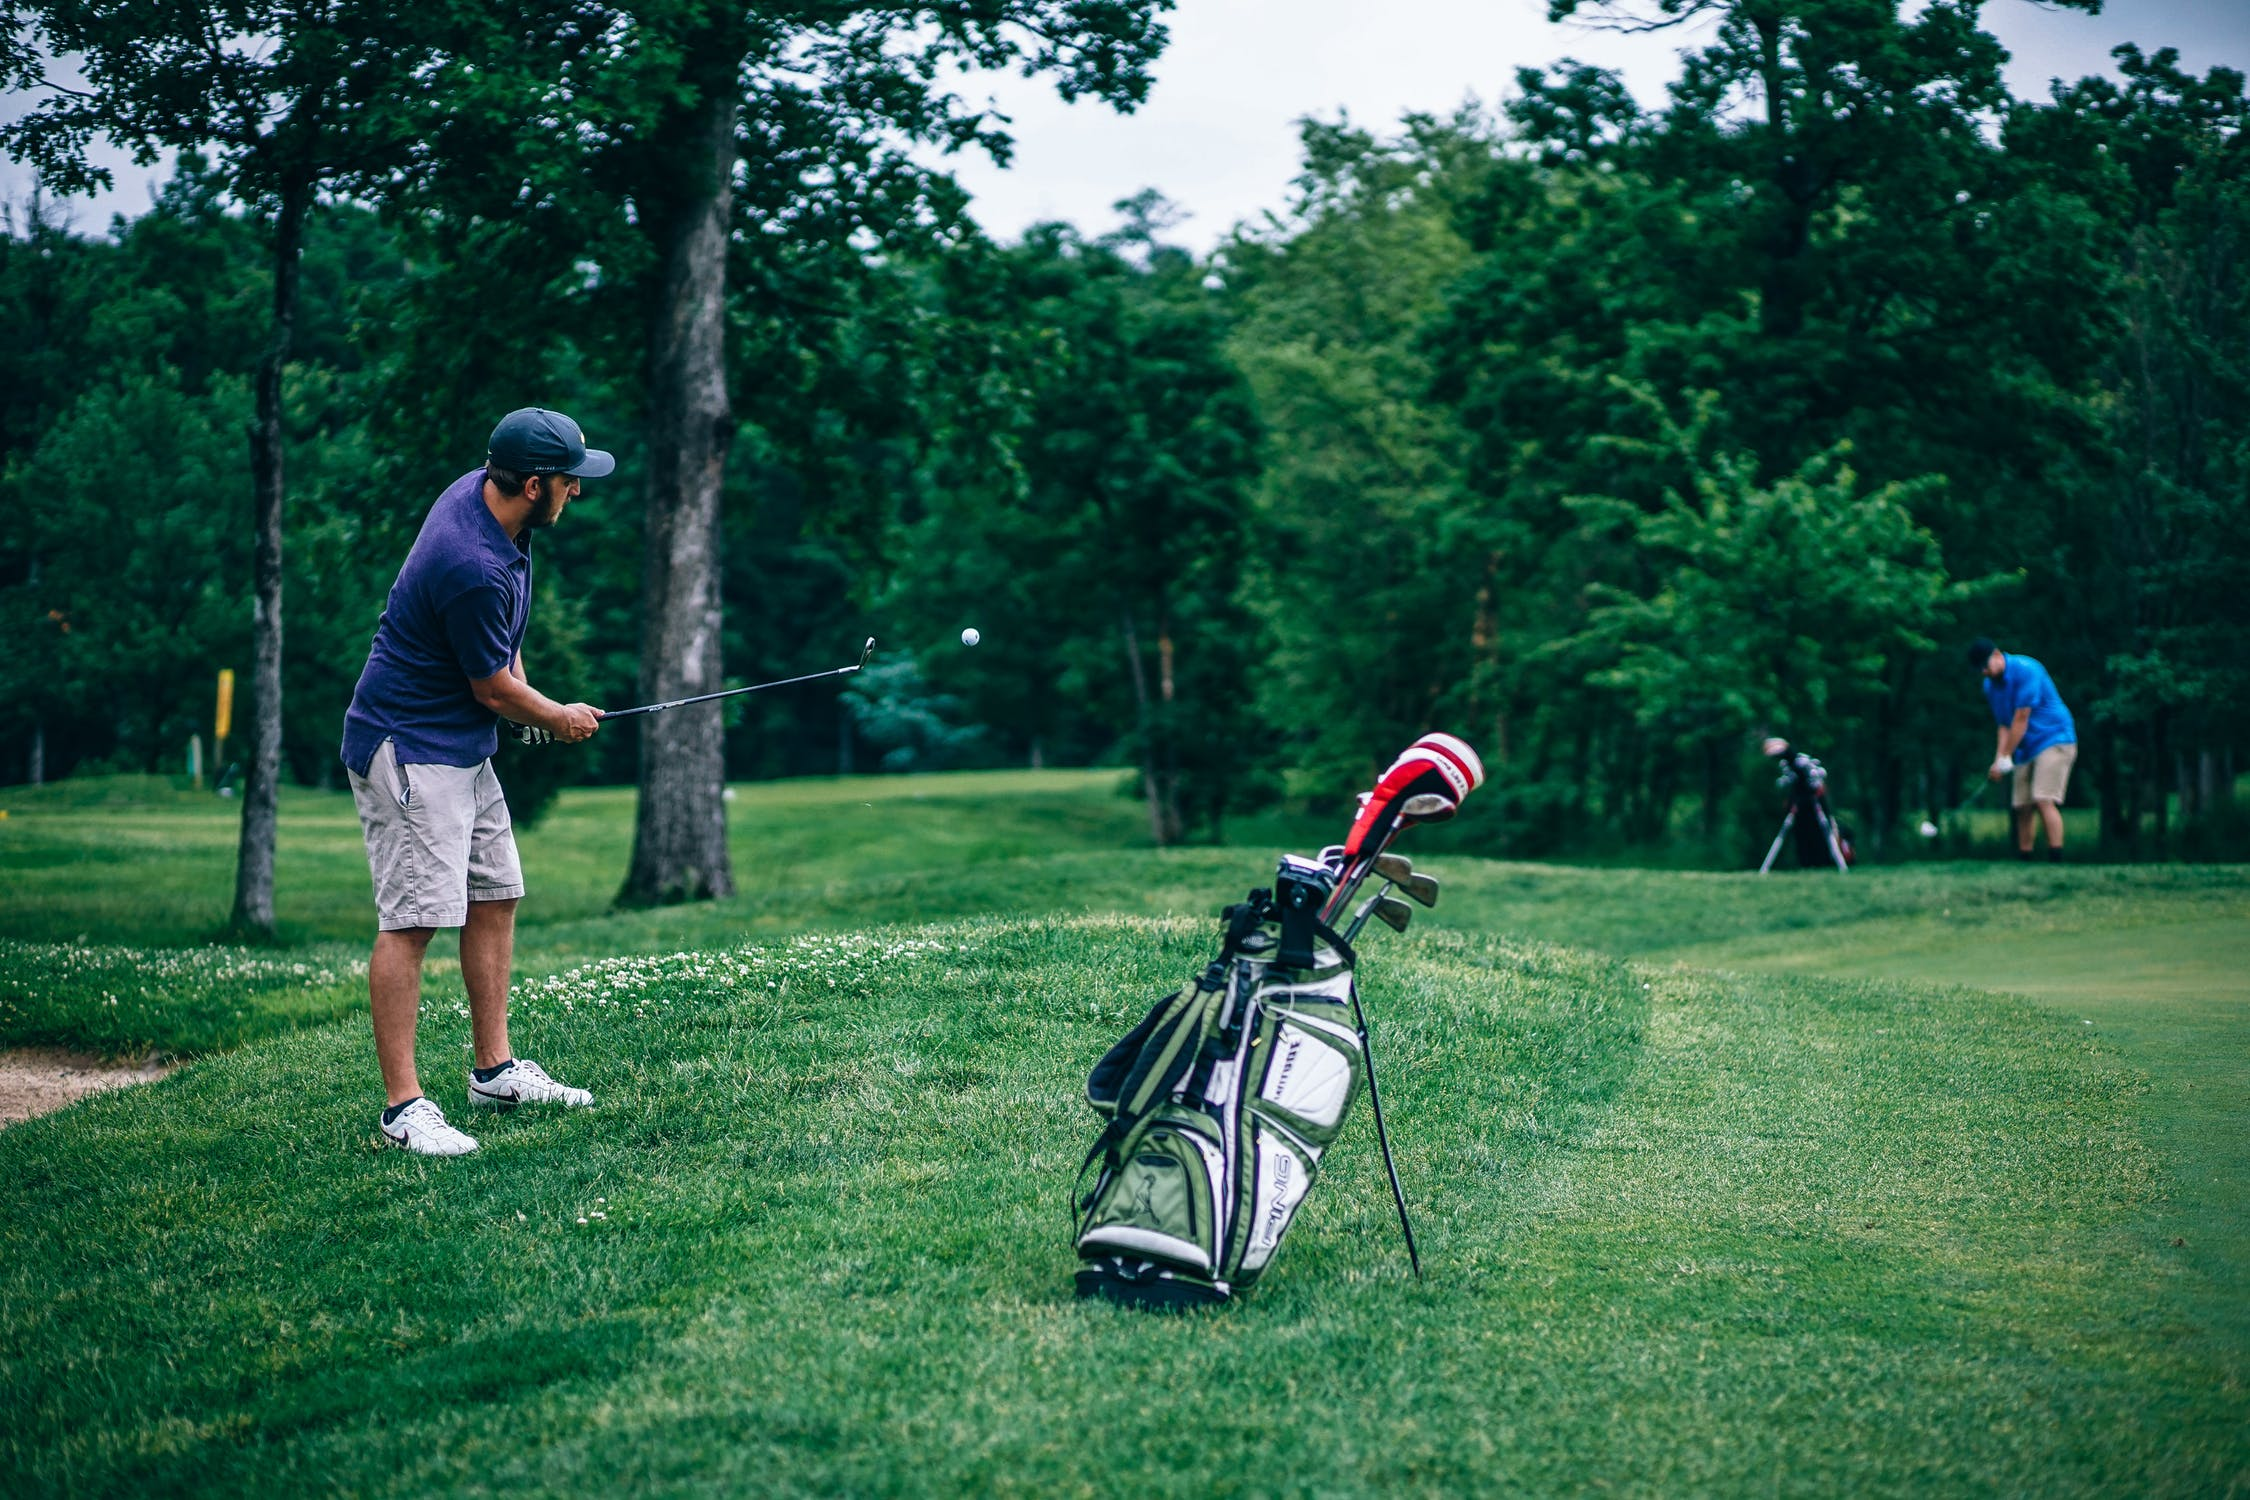 Tips For Golfing in the Heat